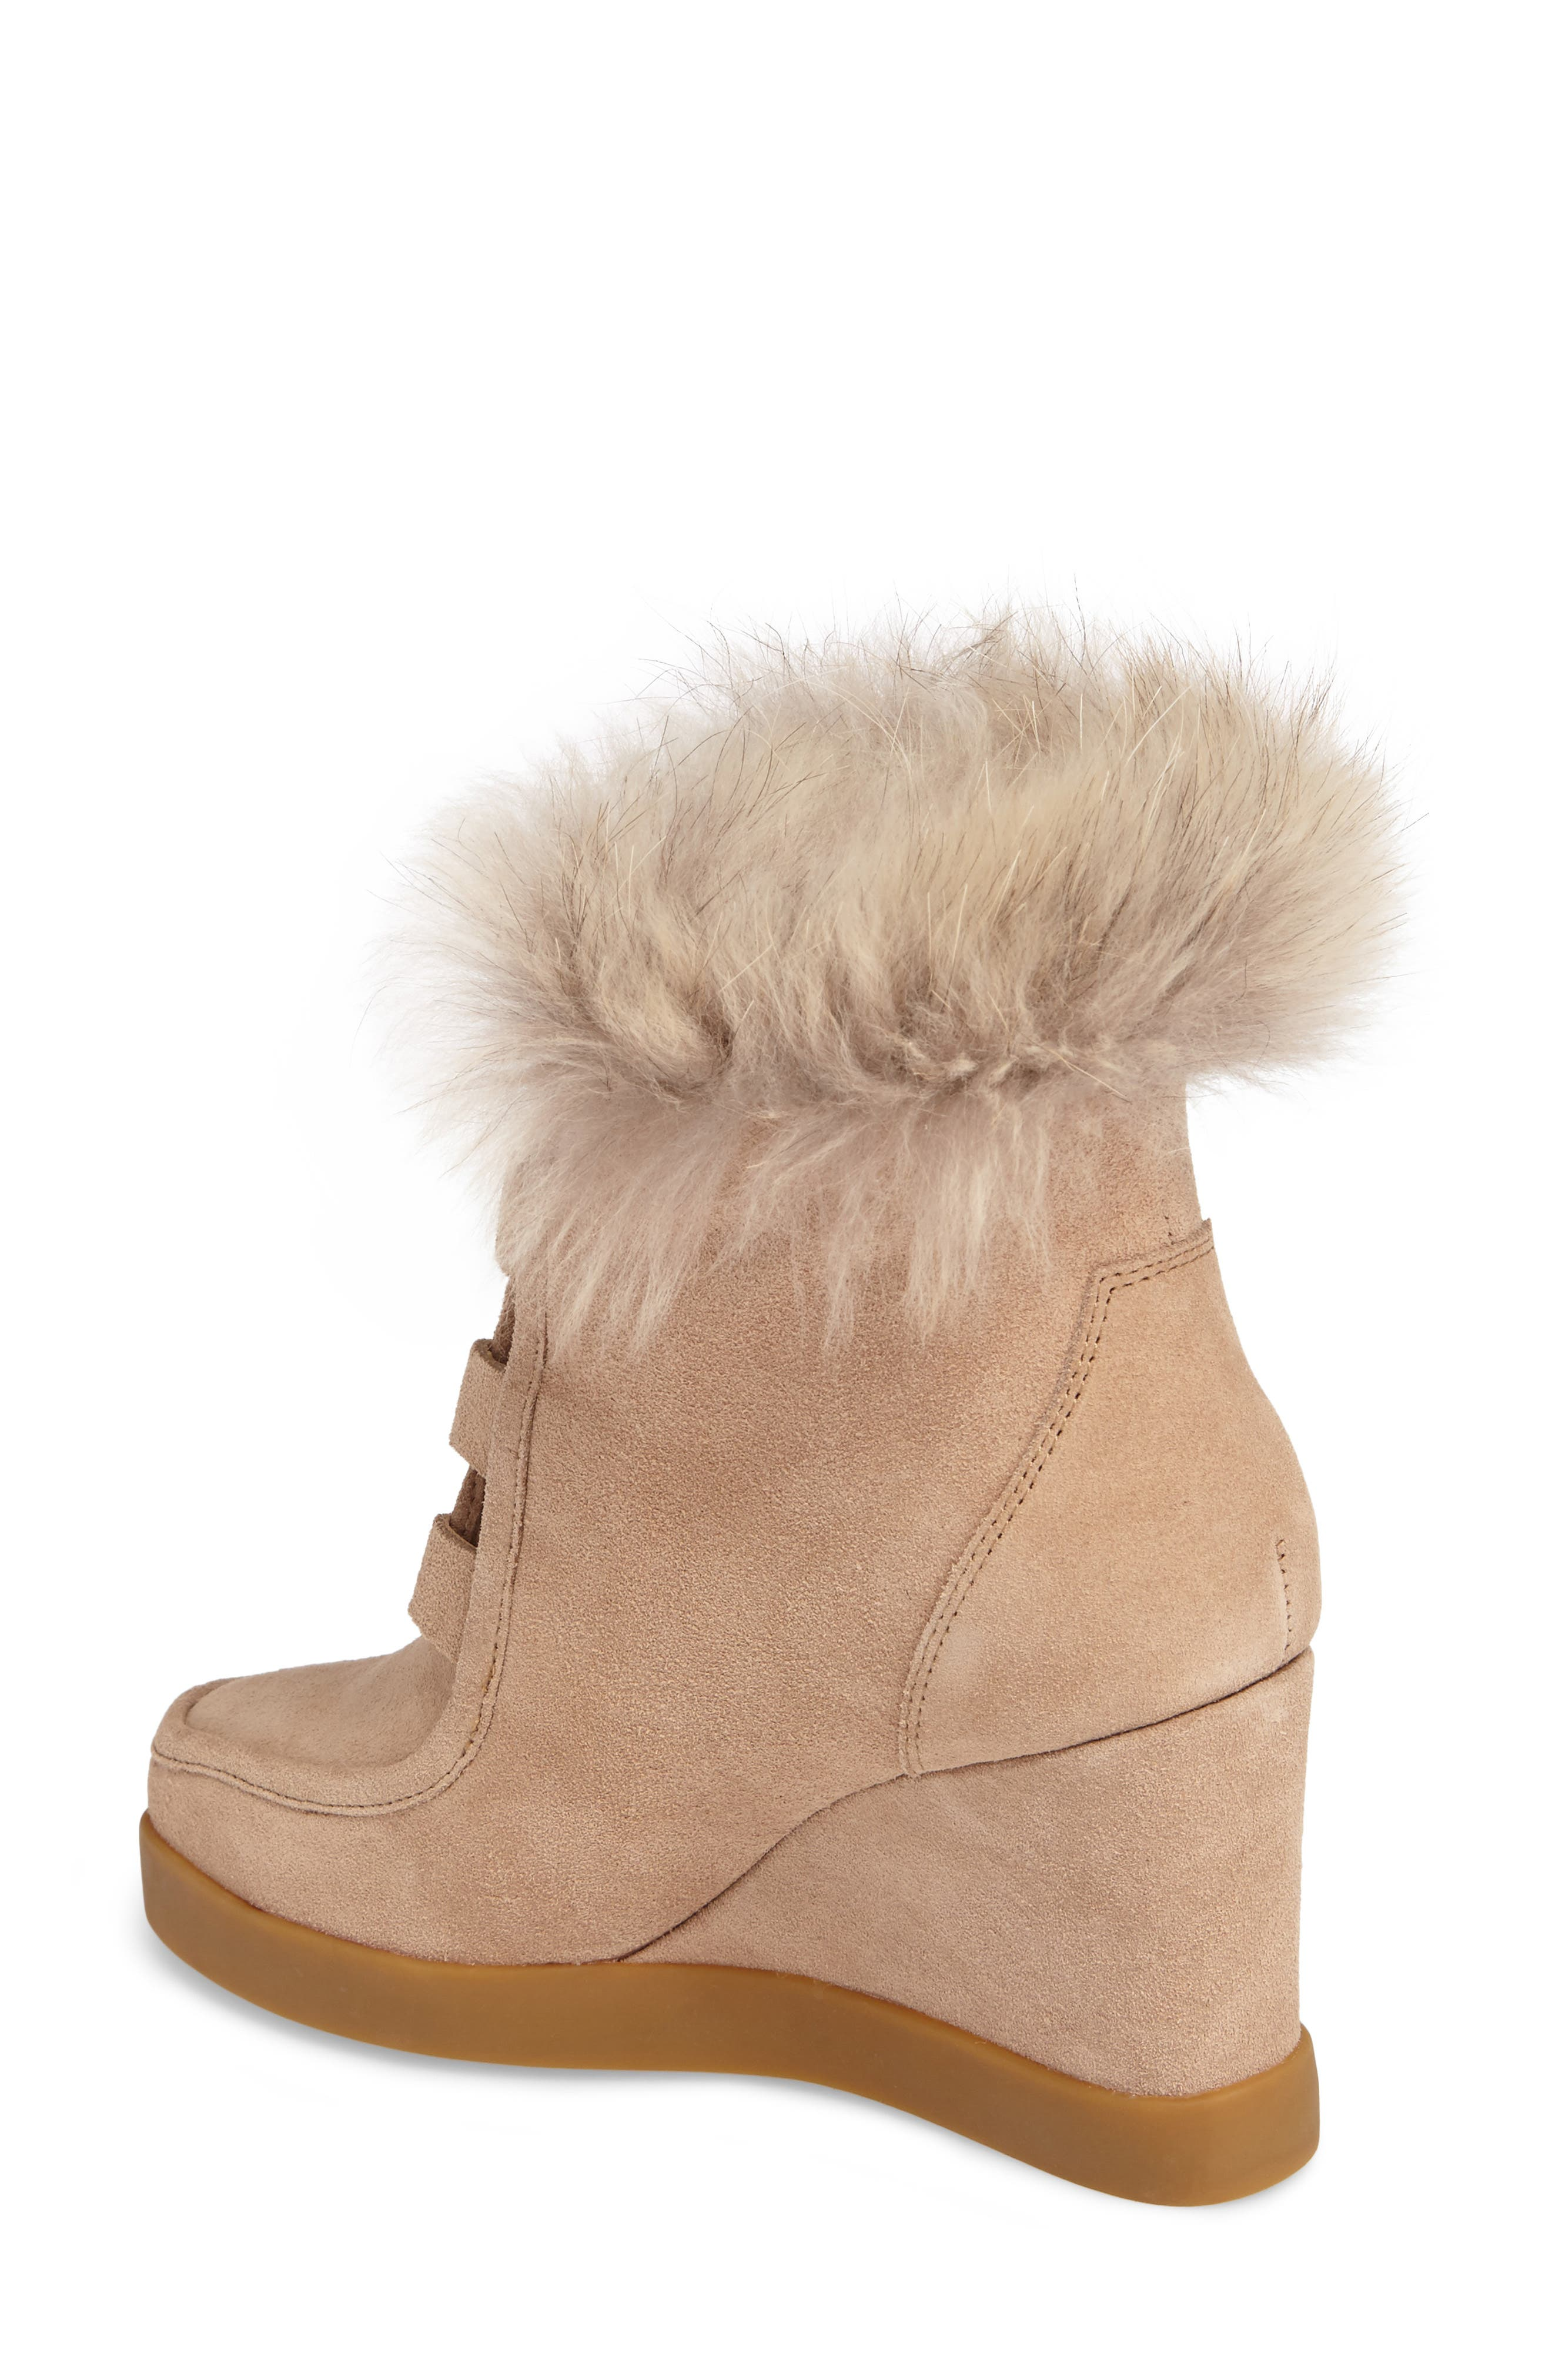 Holly Wedge Bootie with Genuine Fox Fur Trim,                             Alternate thumbnail 2, color,                             Natural Suede